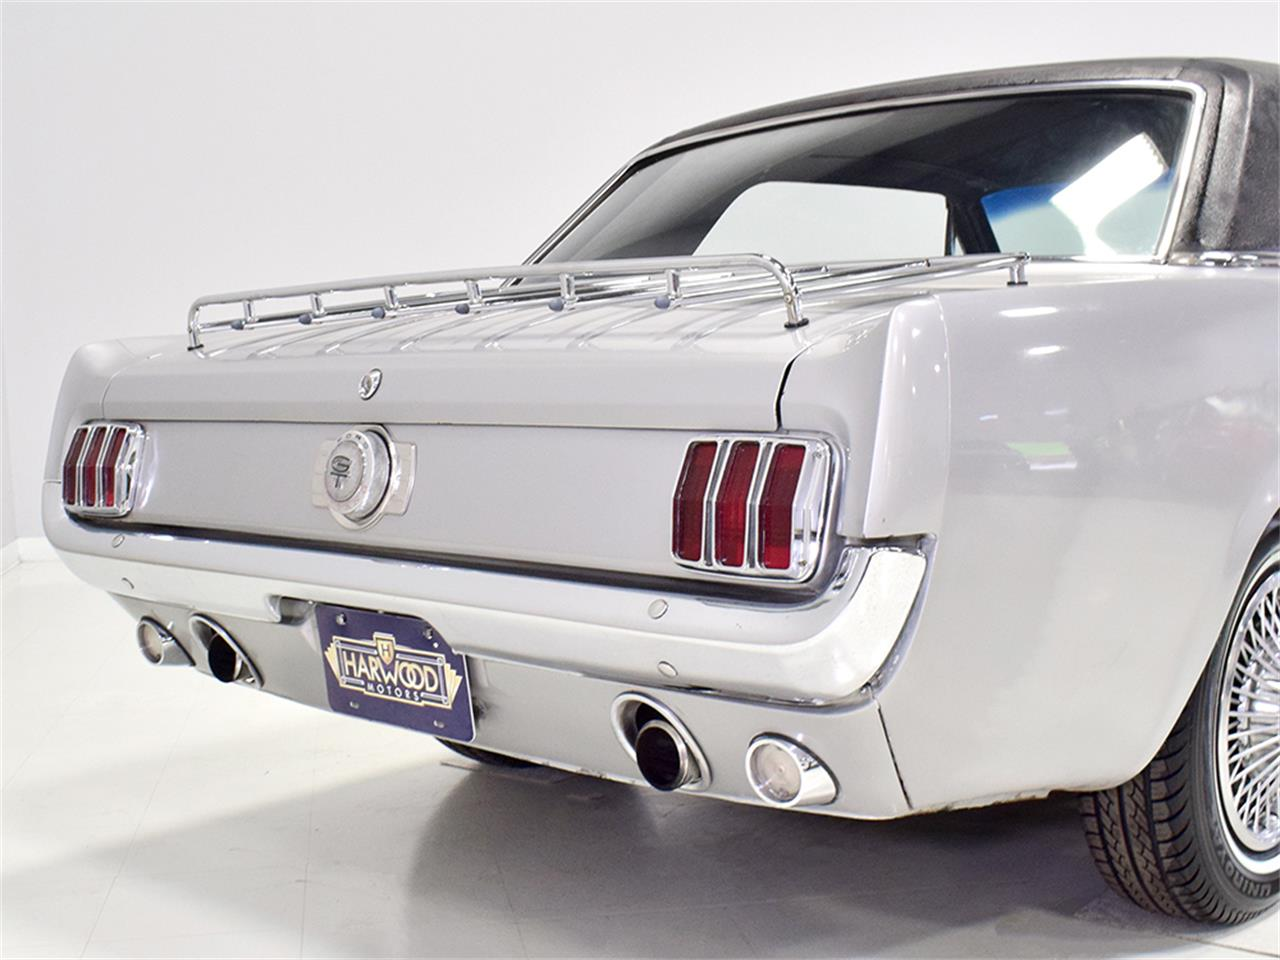 Large Picture of '66 Ford Mustang GT located in Ohio Offered by Harwood Motors, LTD. - Q0S5